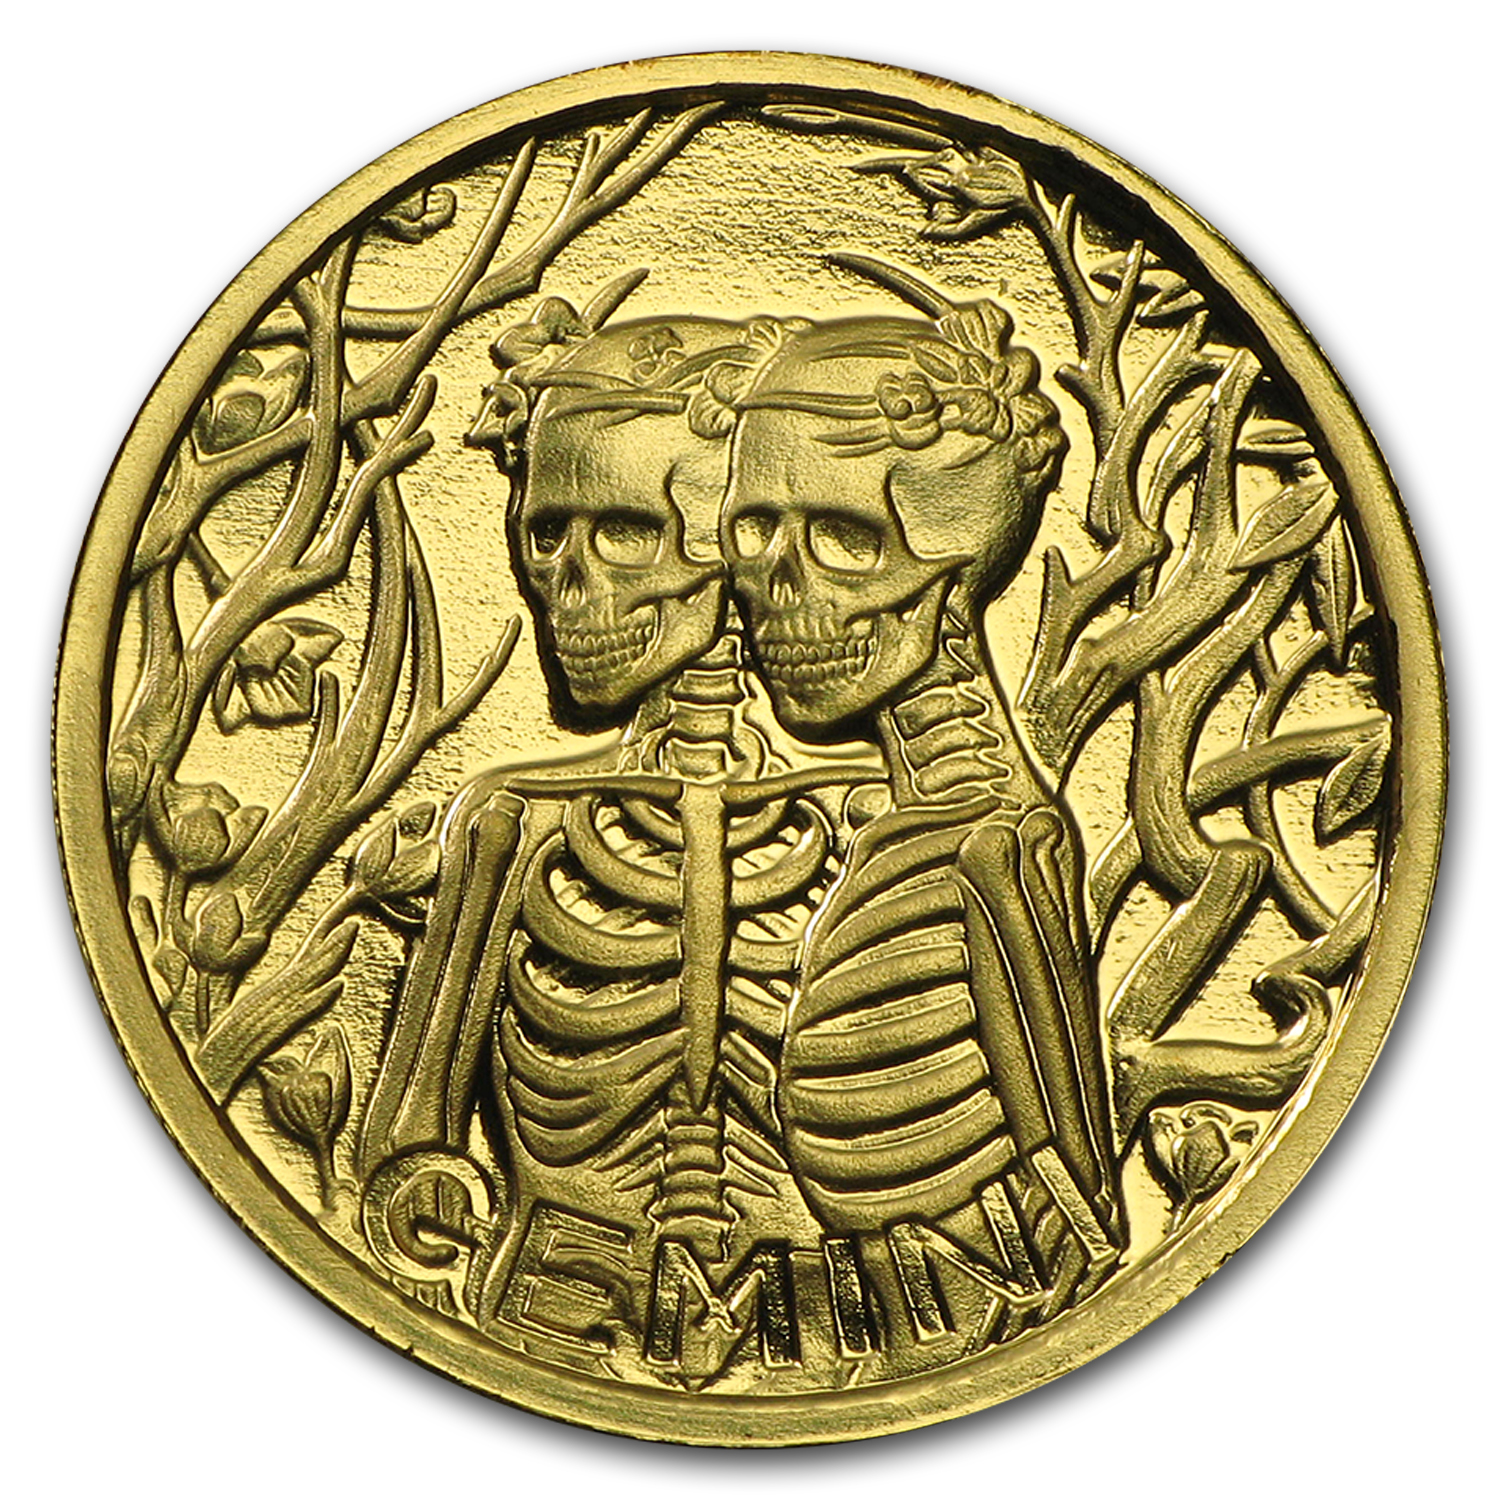 1/10 oz Gold Proof Round - Zodiac Skull Series (Gemini)